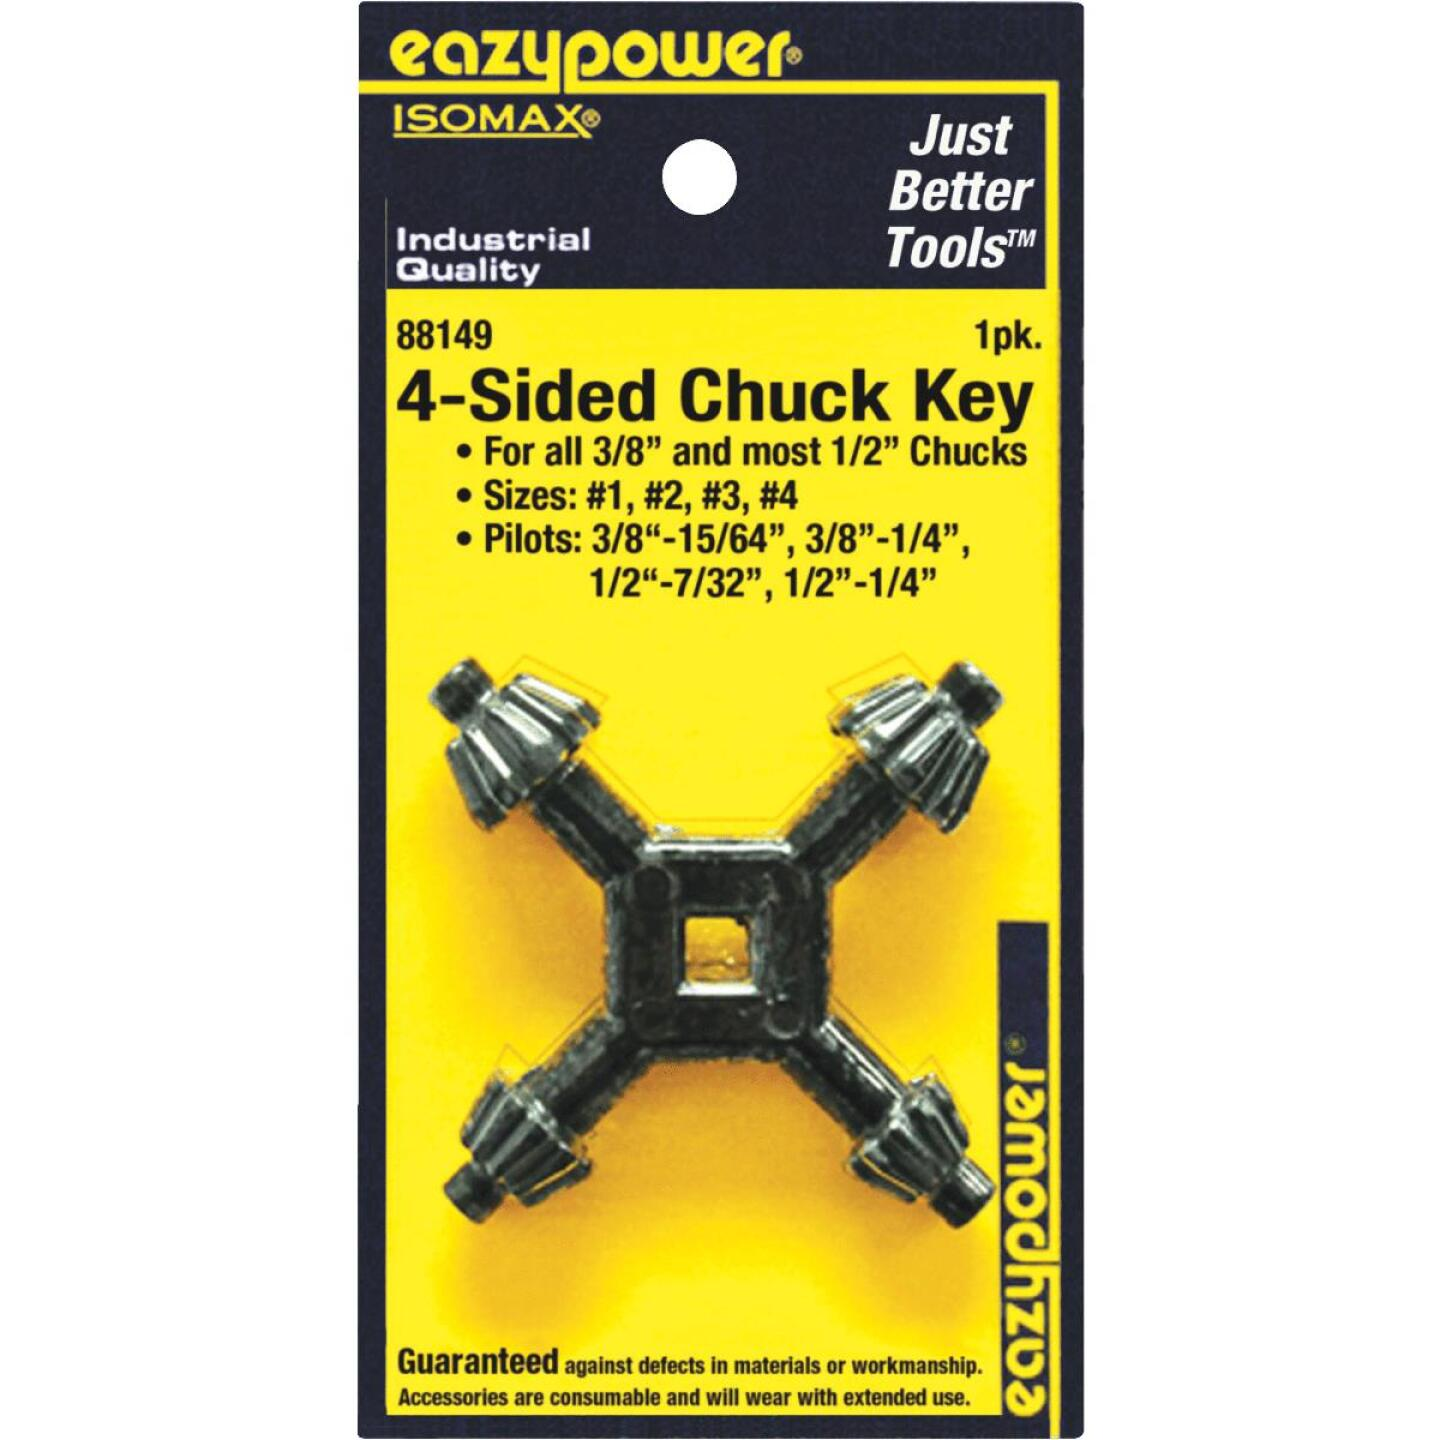 Eazypower 3/8 In. and 1/2 In. 4-Sided Chuck Key with 15/64 In., 1/4 In., 17/64 In. Pilots Image 1